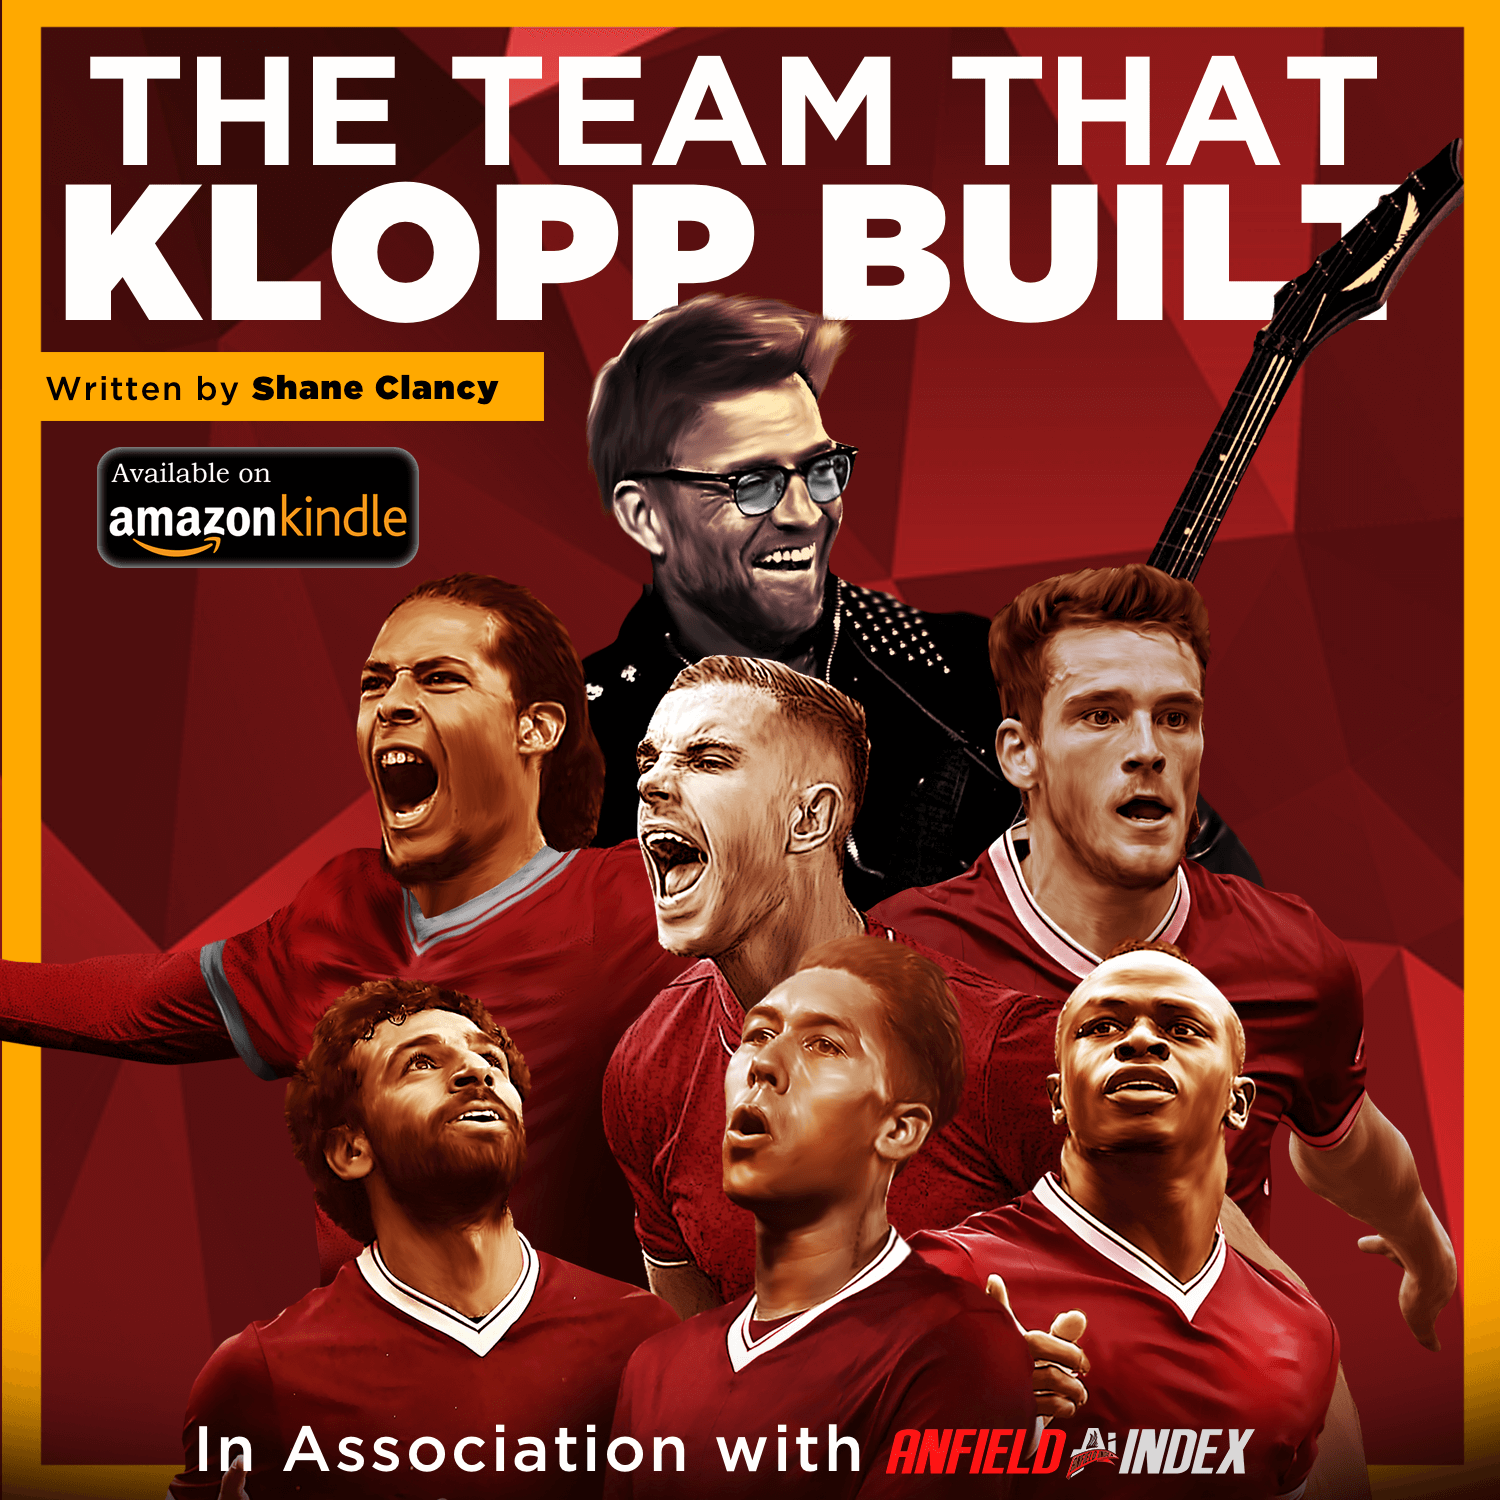 Buy our new book - The Team That Klopp Built